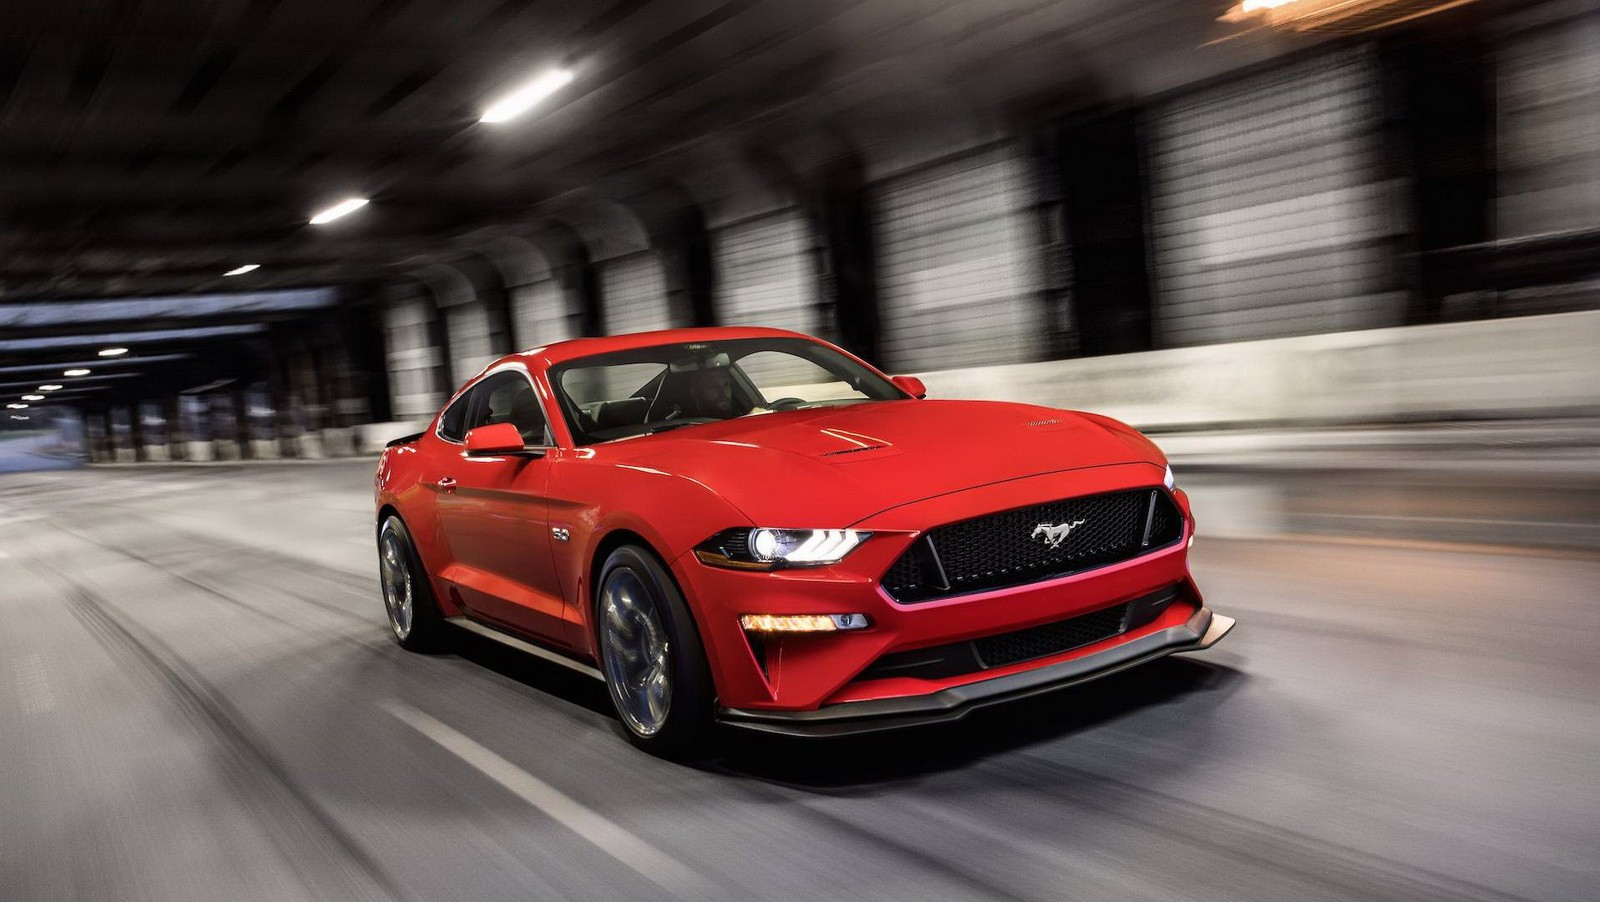 2018 ford mustang gt dyno pull reveals coyote v8 produces 415 rwhp autoevolution. Black Bedroom Furniture Sets. Home Design Ideas